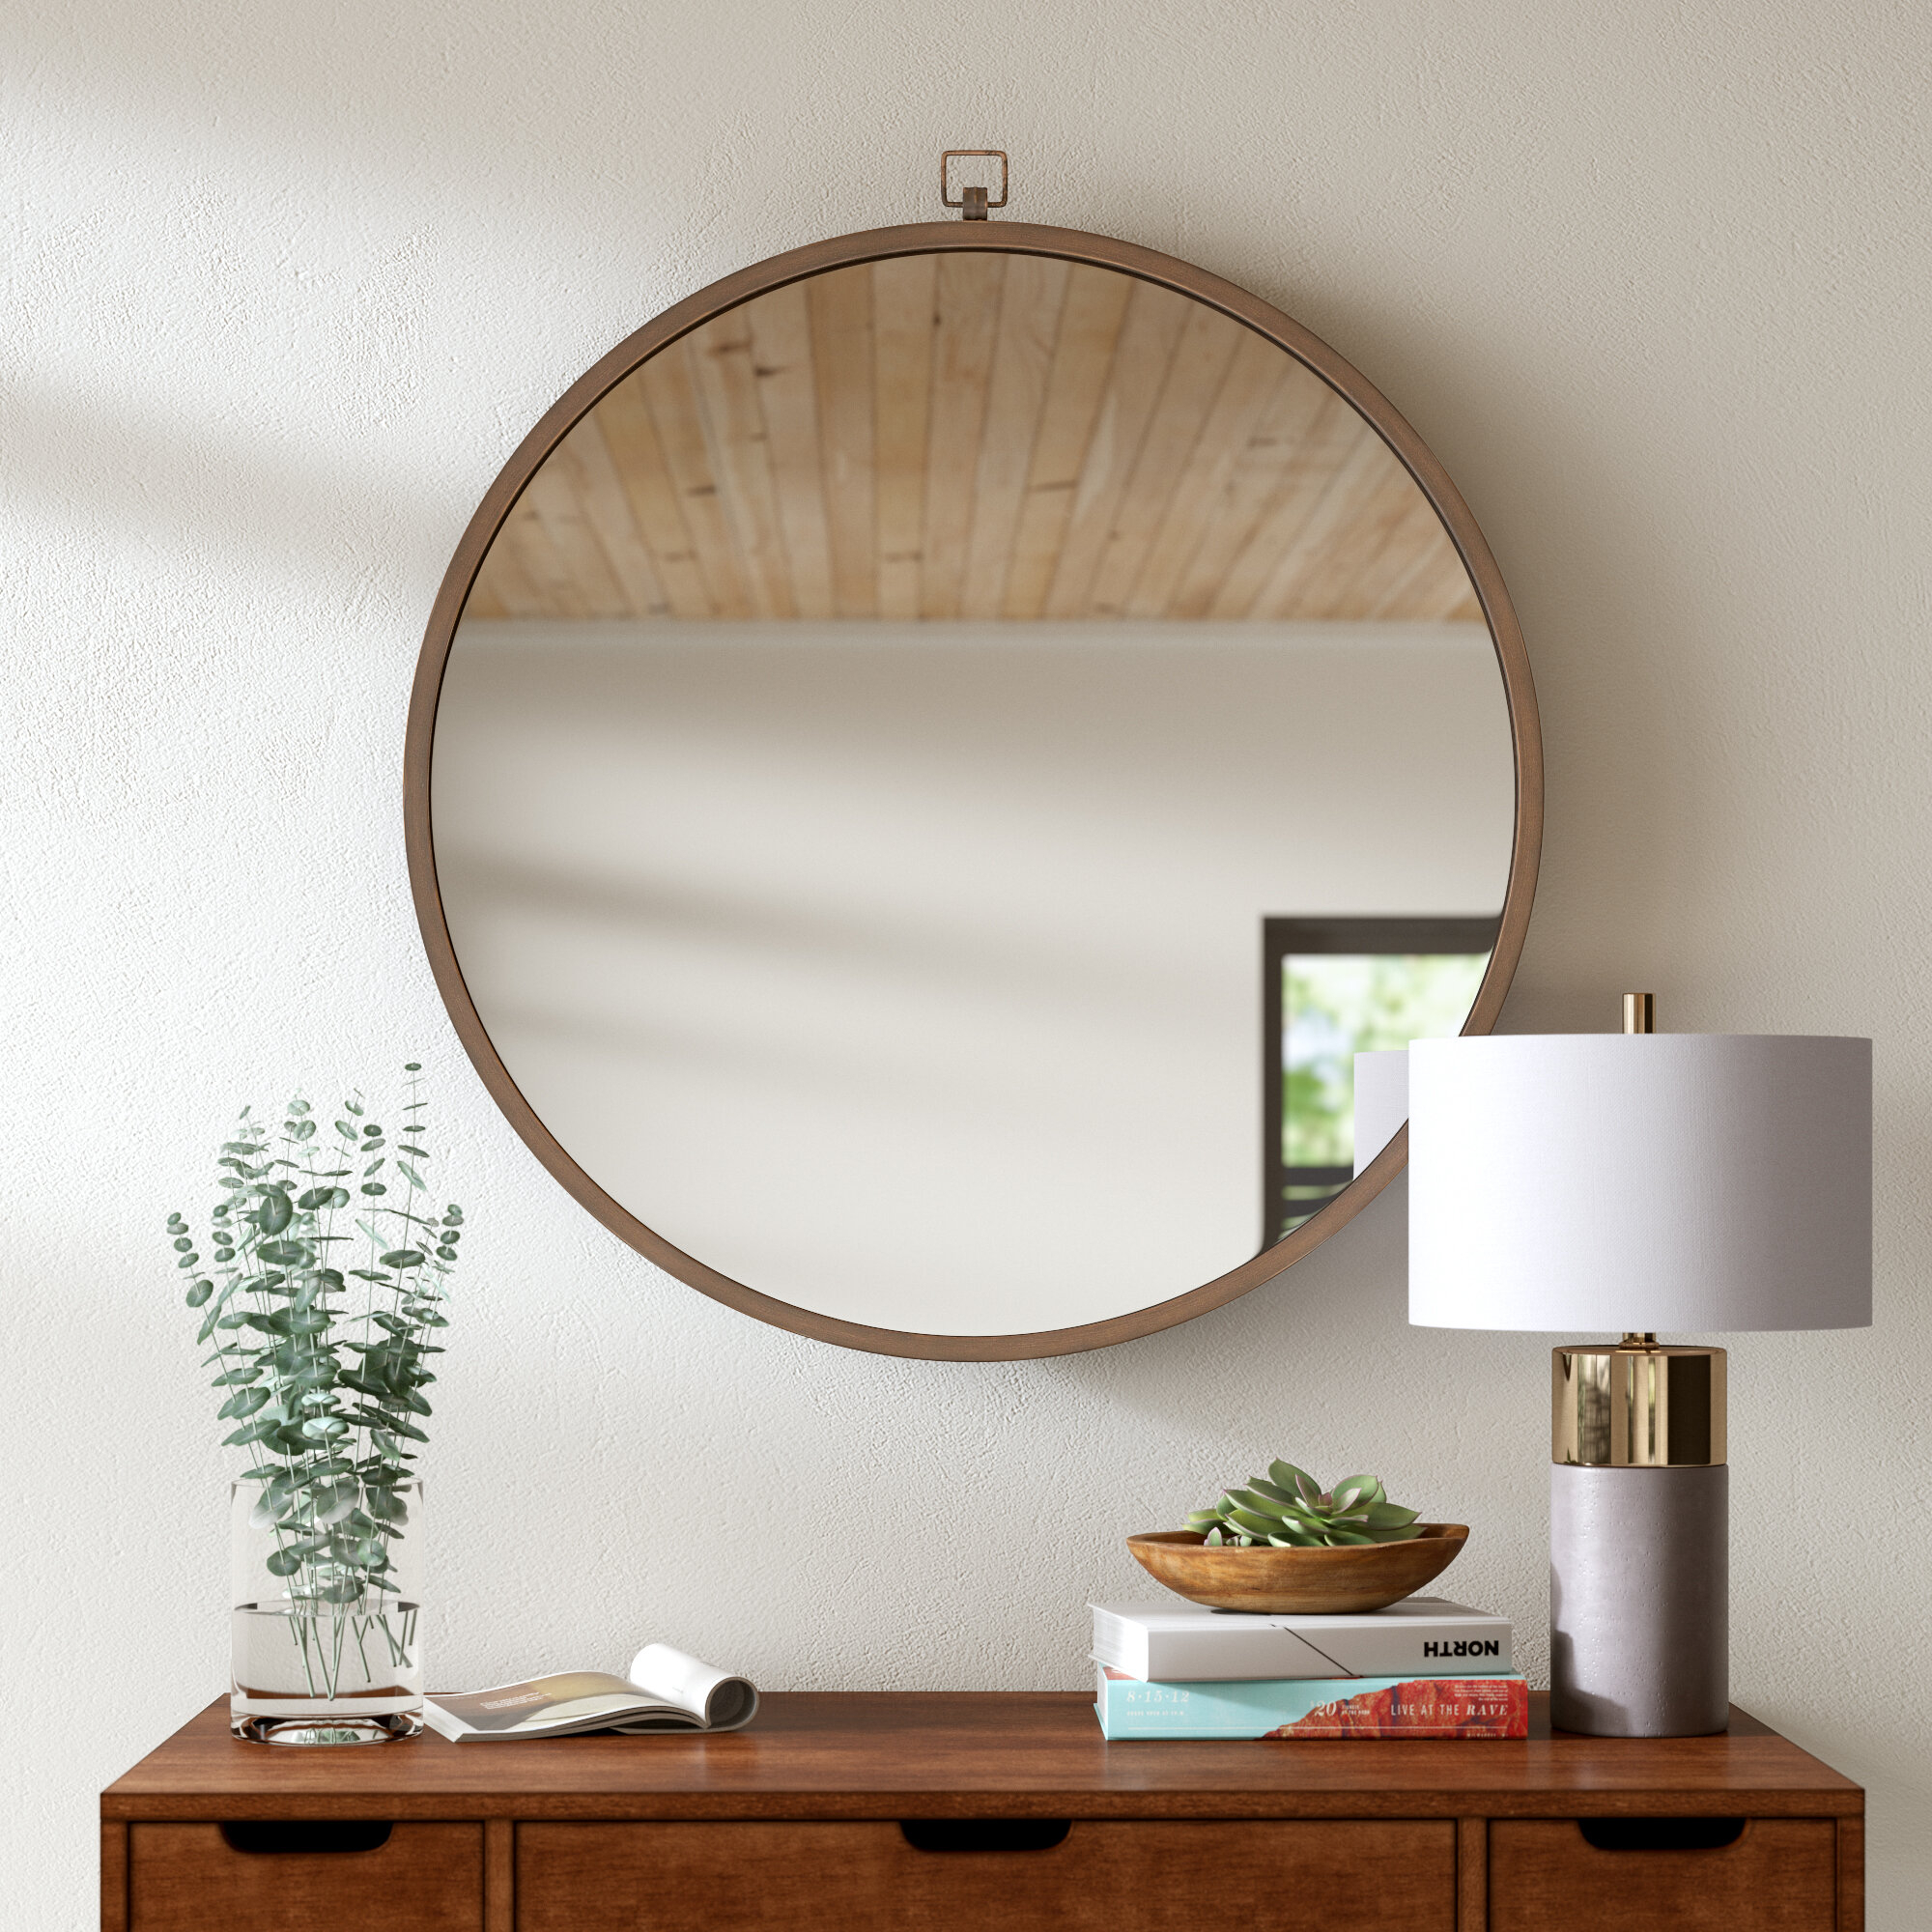 Modern & Contemporary Reclaimed Wood Mirror | Allmodern Intended For Booth Reclaimed Wall Mirrors Accent (Image 8 of 20)